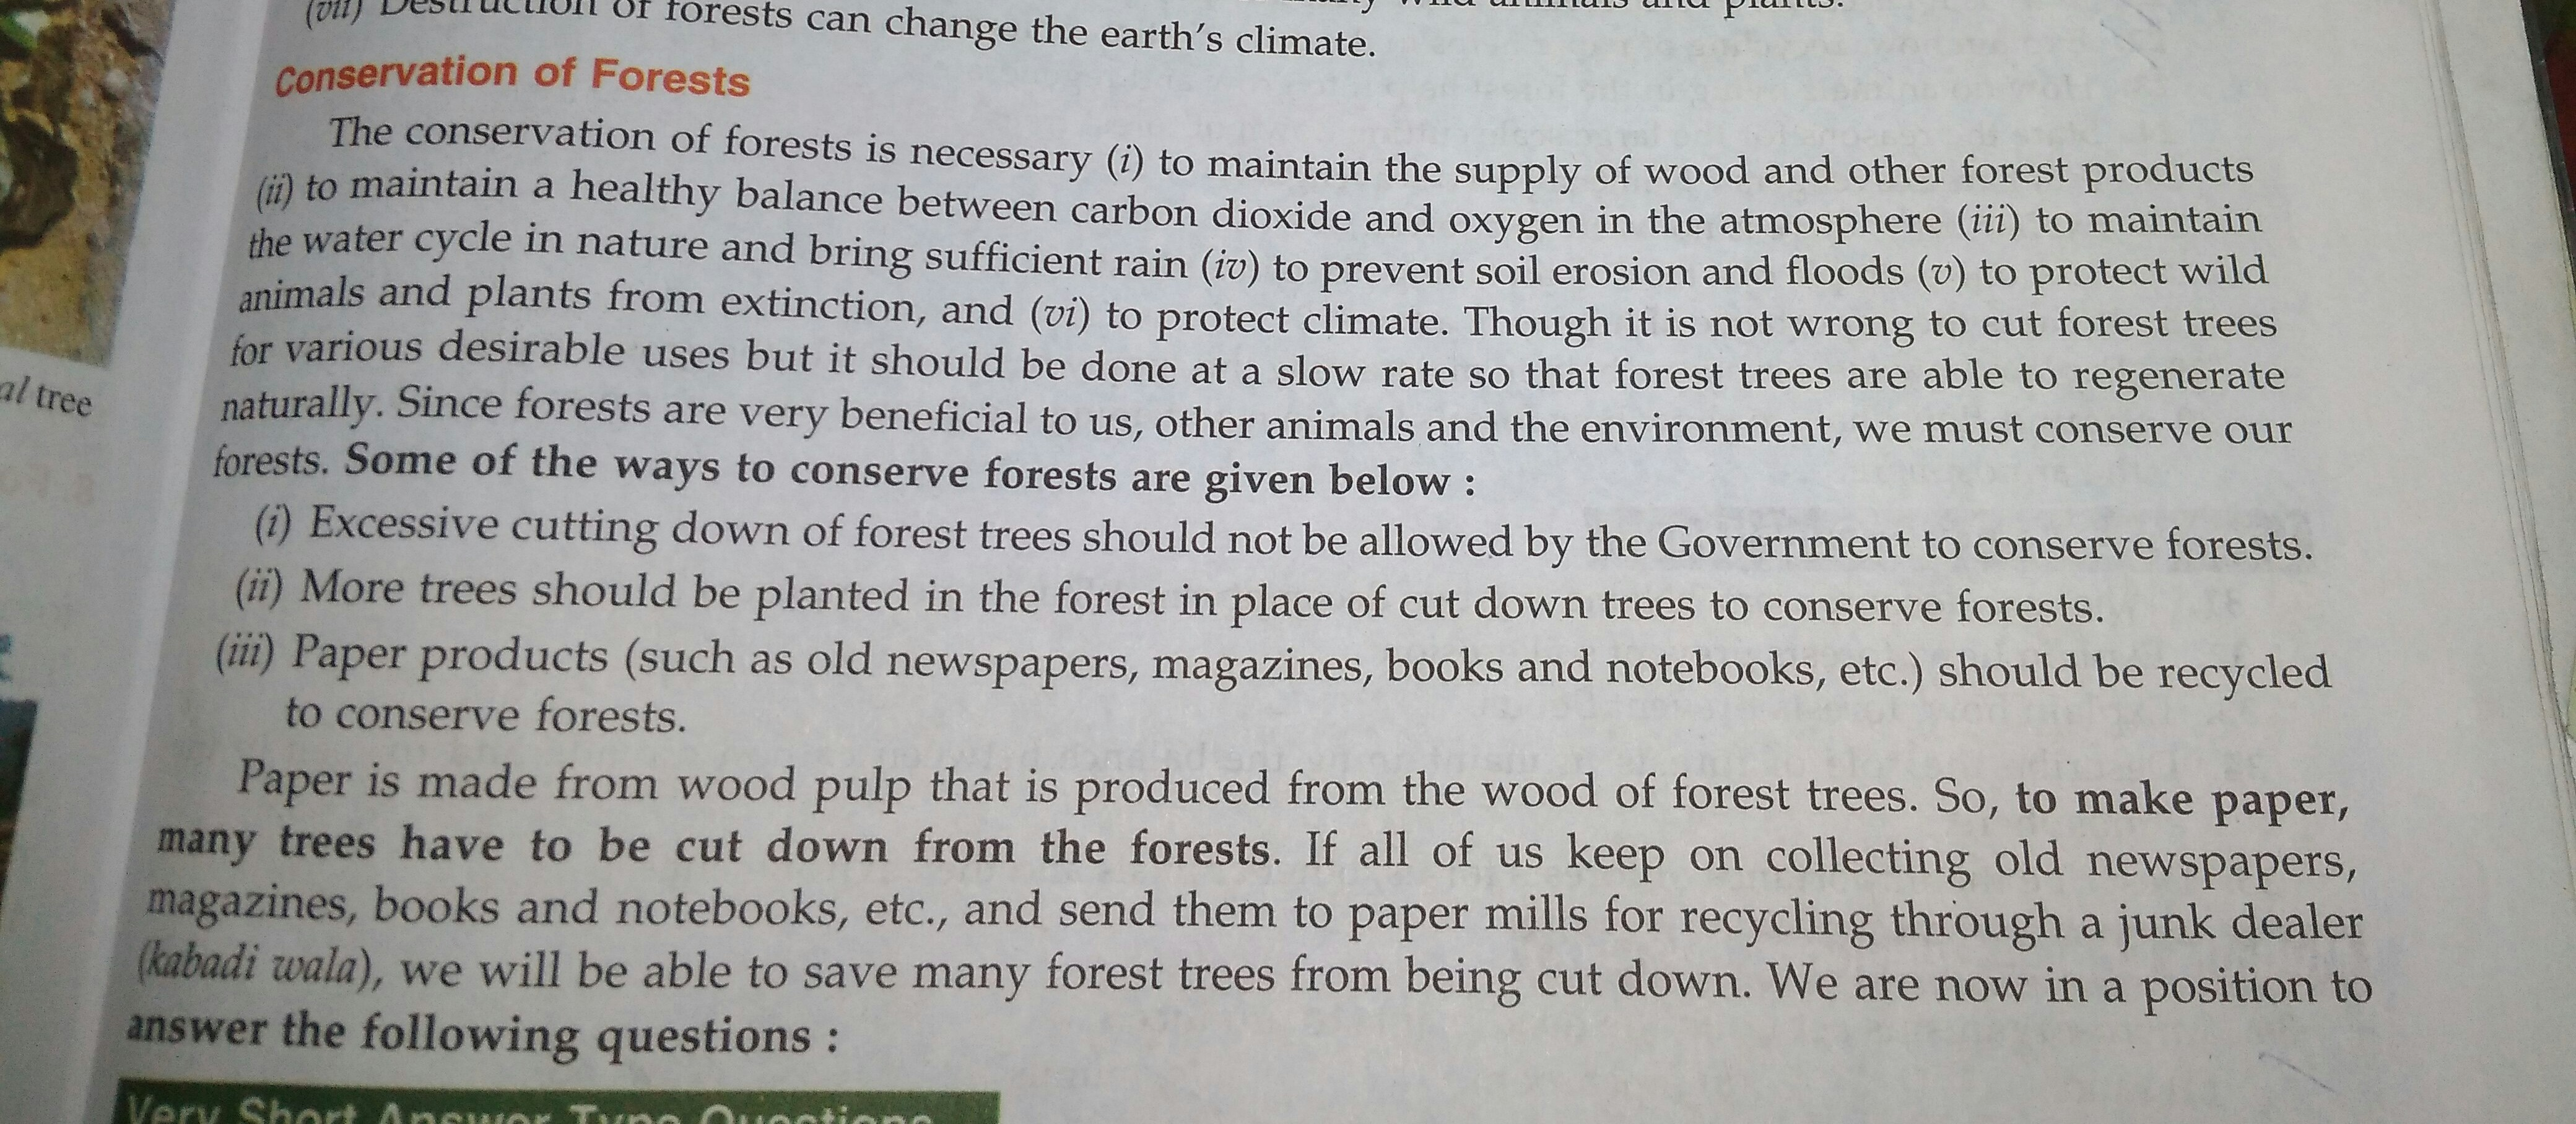 measures to conserve forest